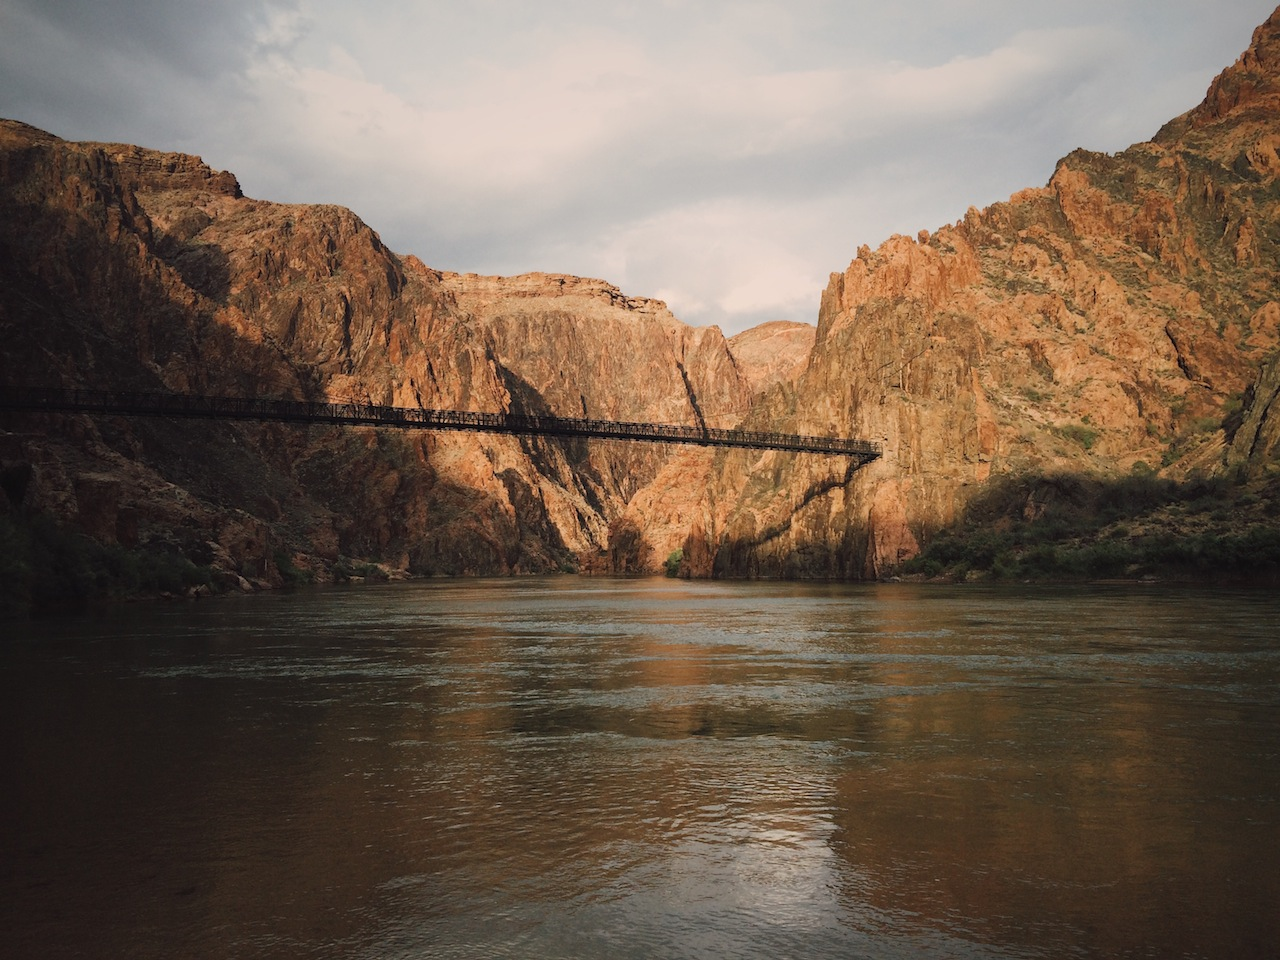 Bridge over the Colorado River along the South Kaibab Trail